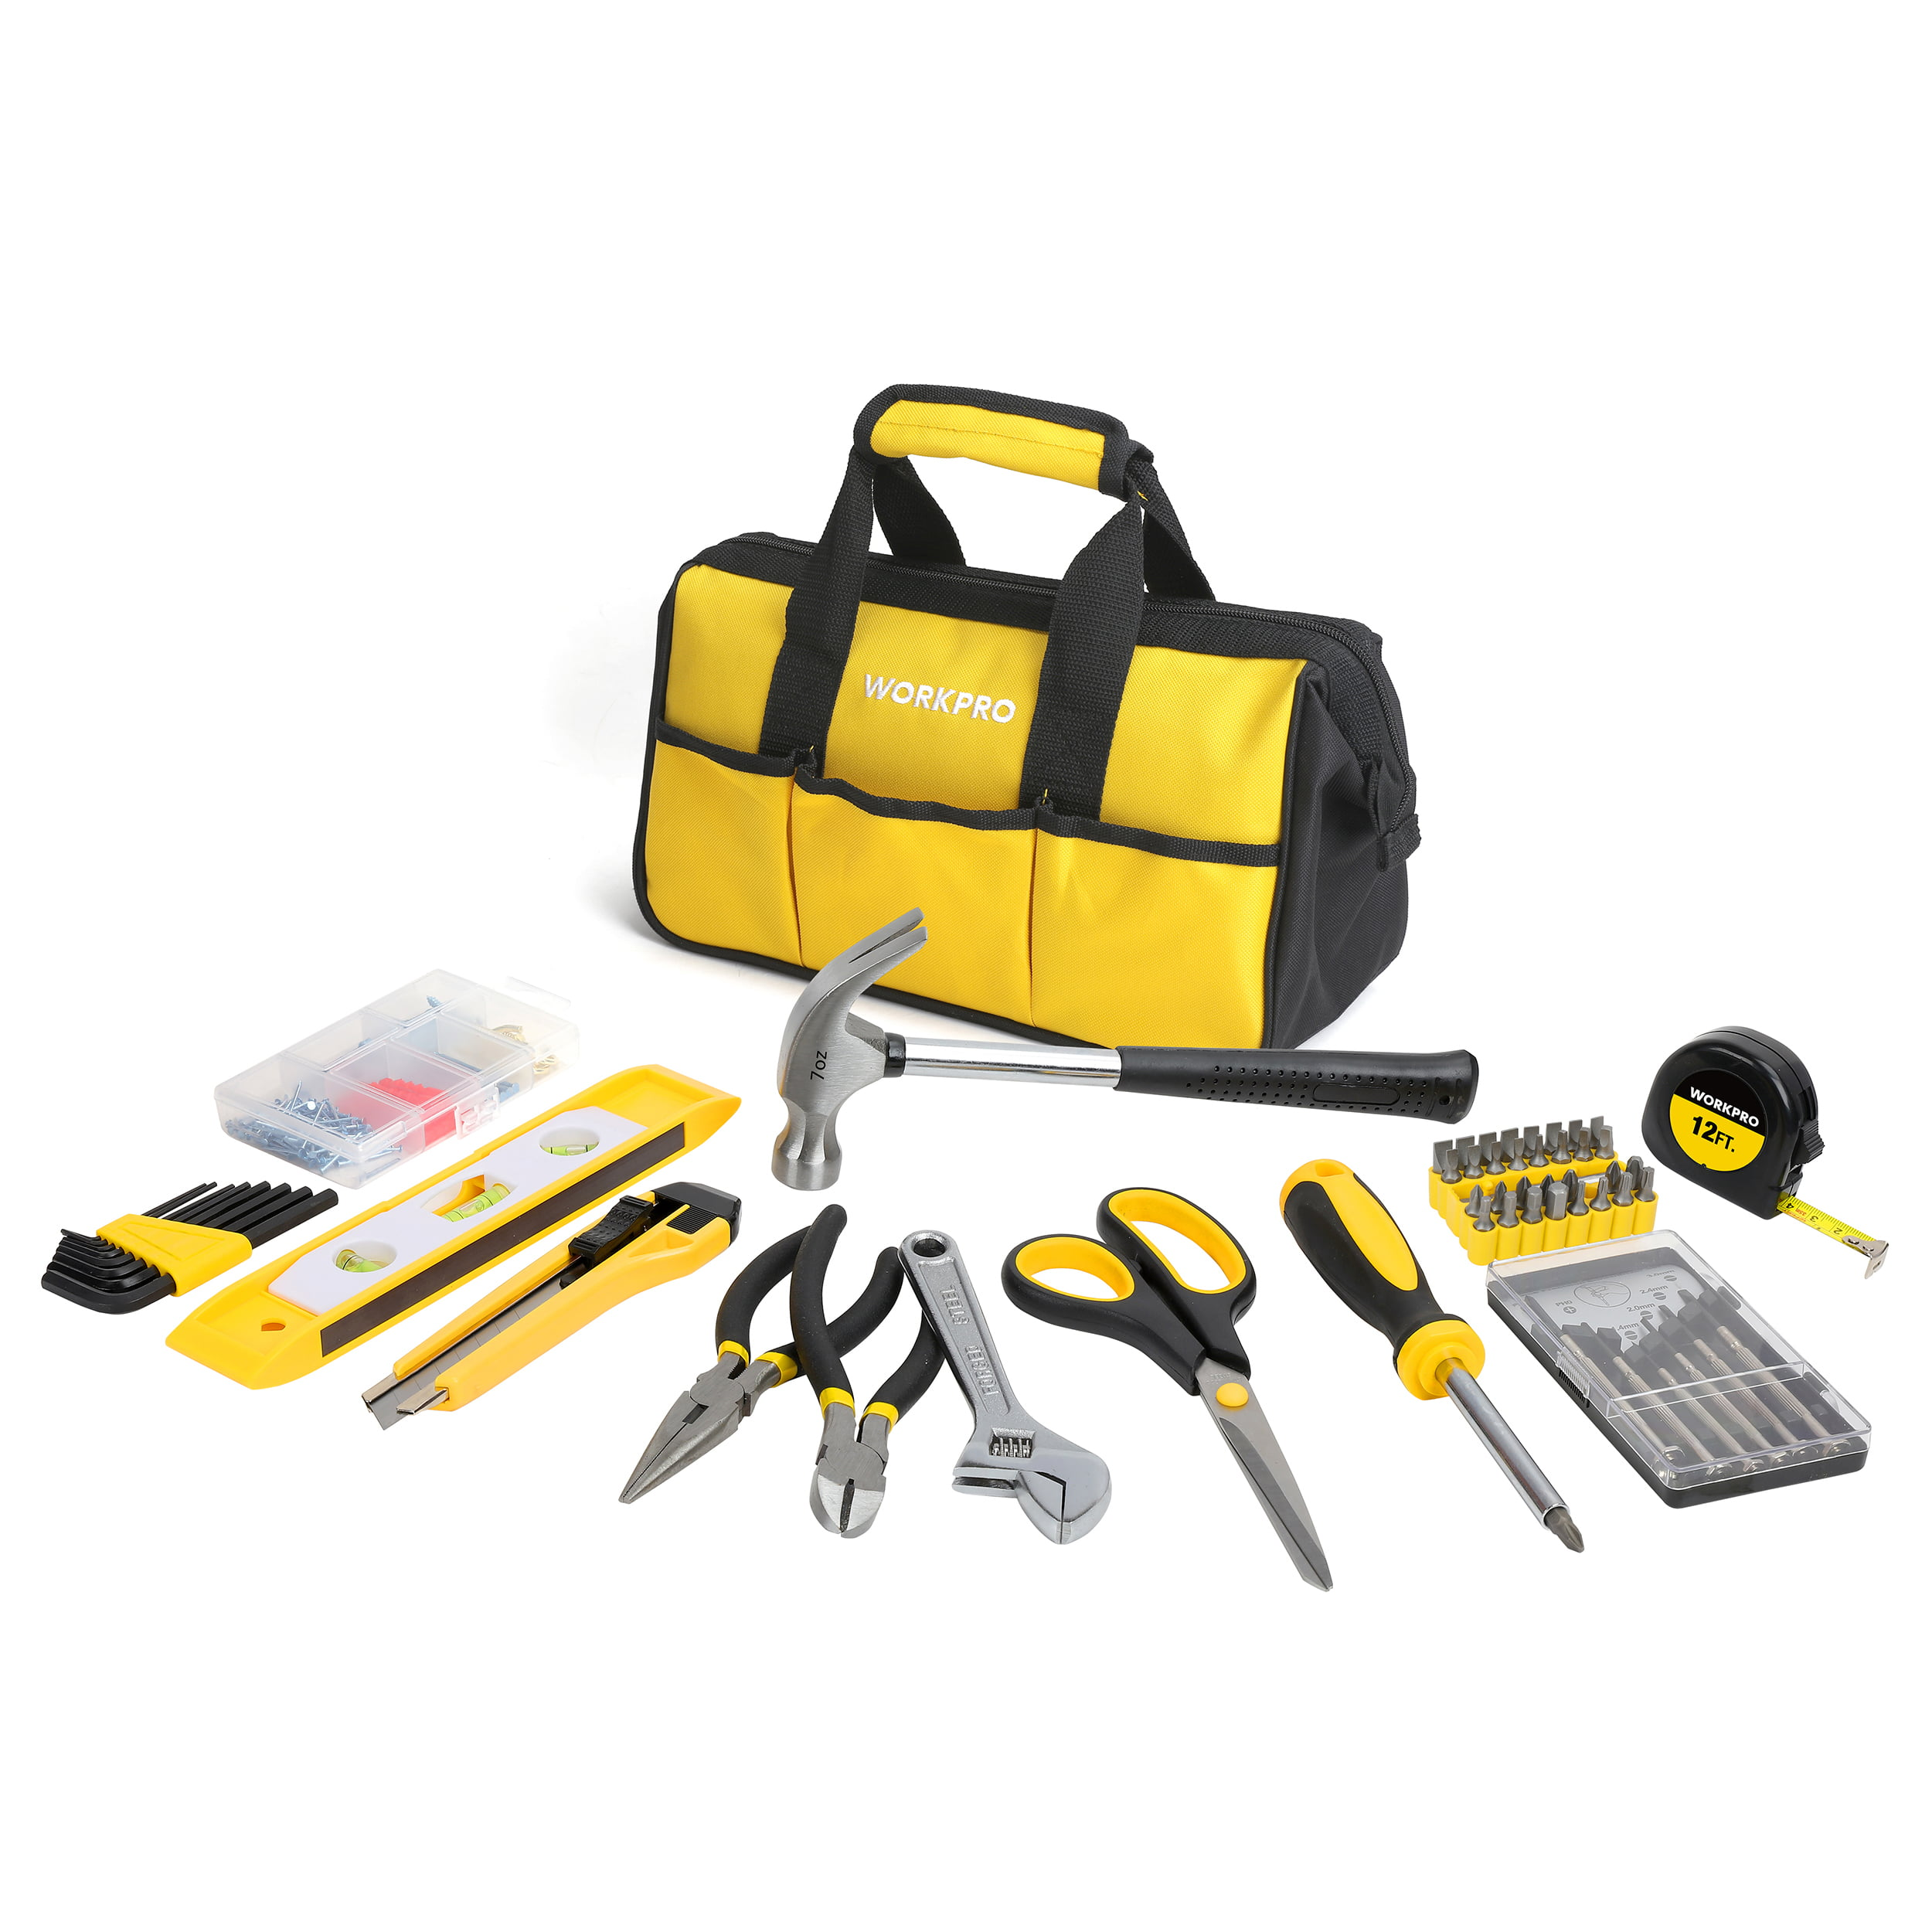 WorkPro 199-Piece Home Repair Tool Kit - Walmart.com